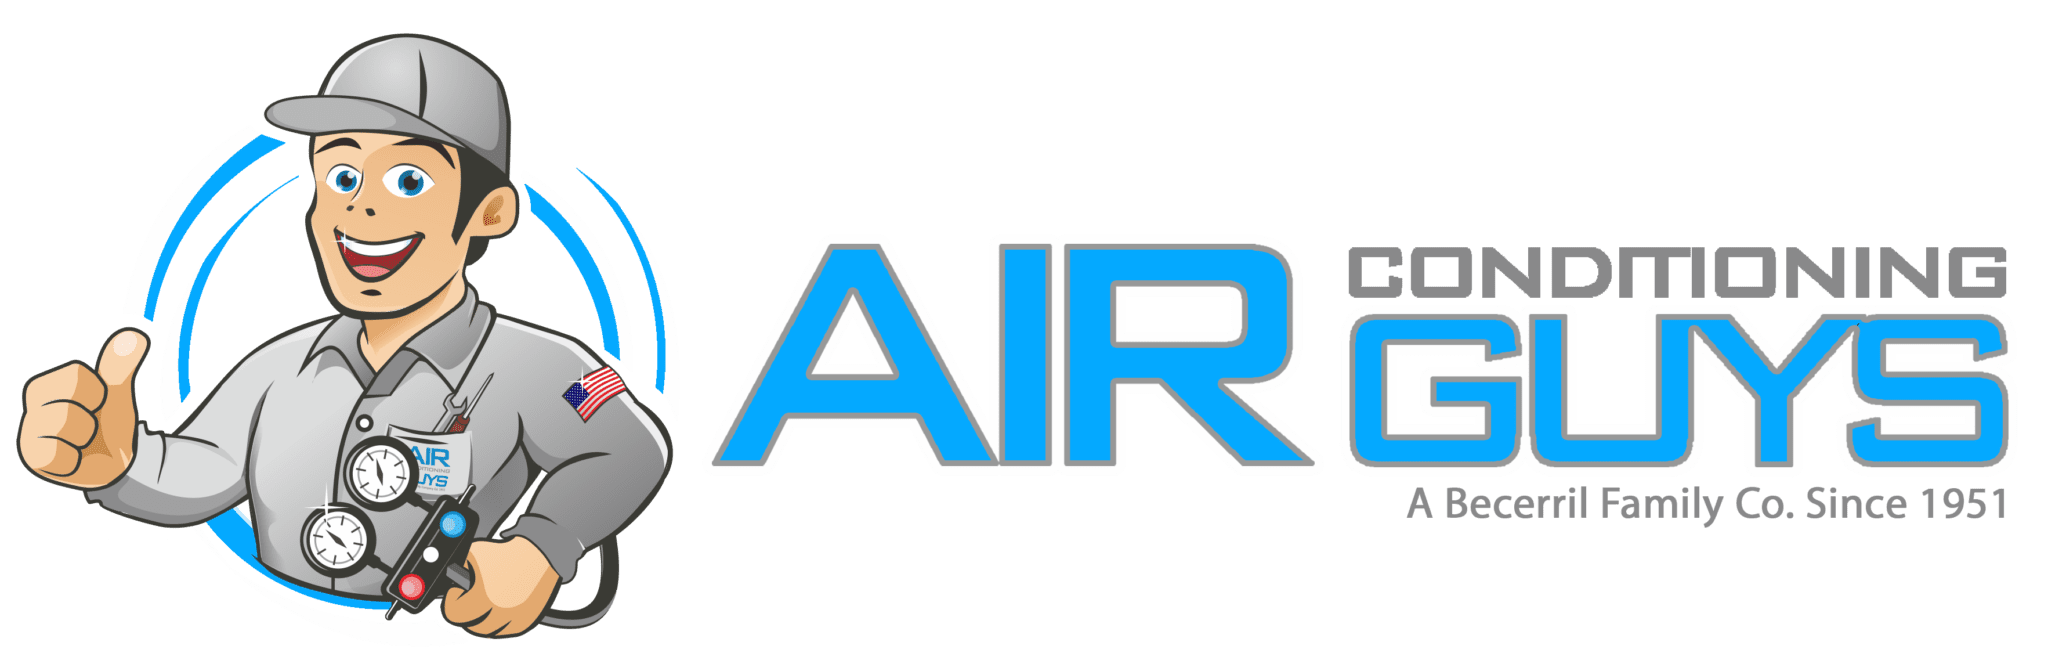 Air Conditioning Guys - Becerril Family Co